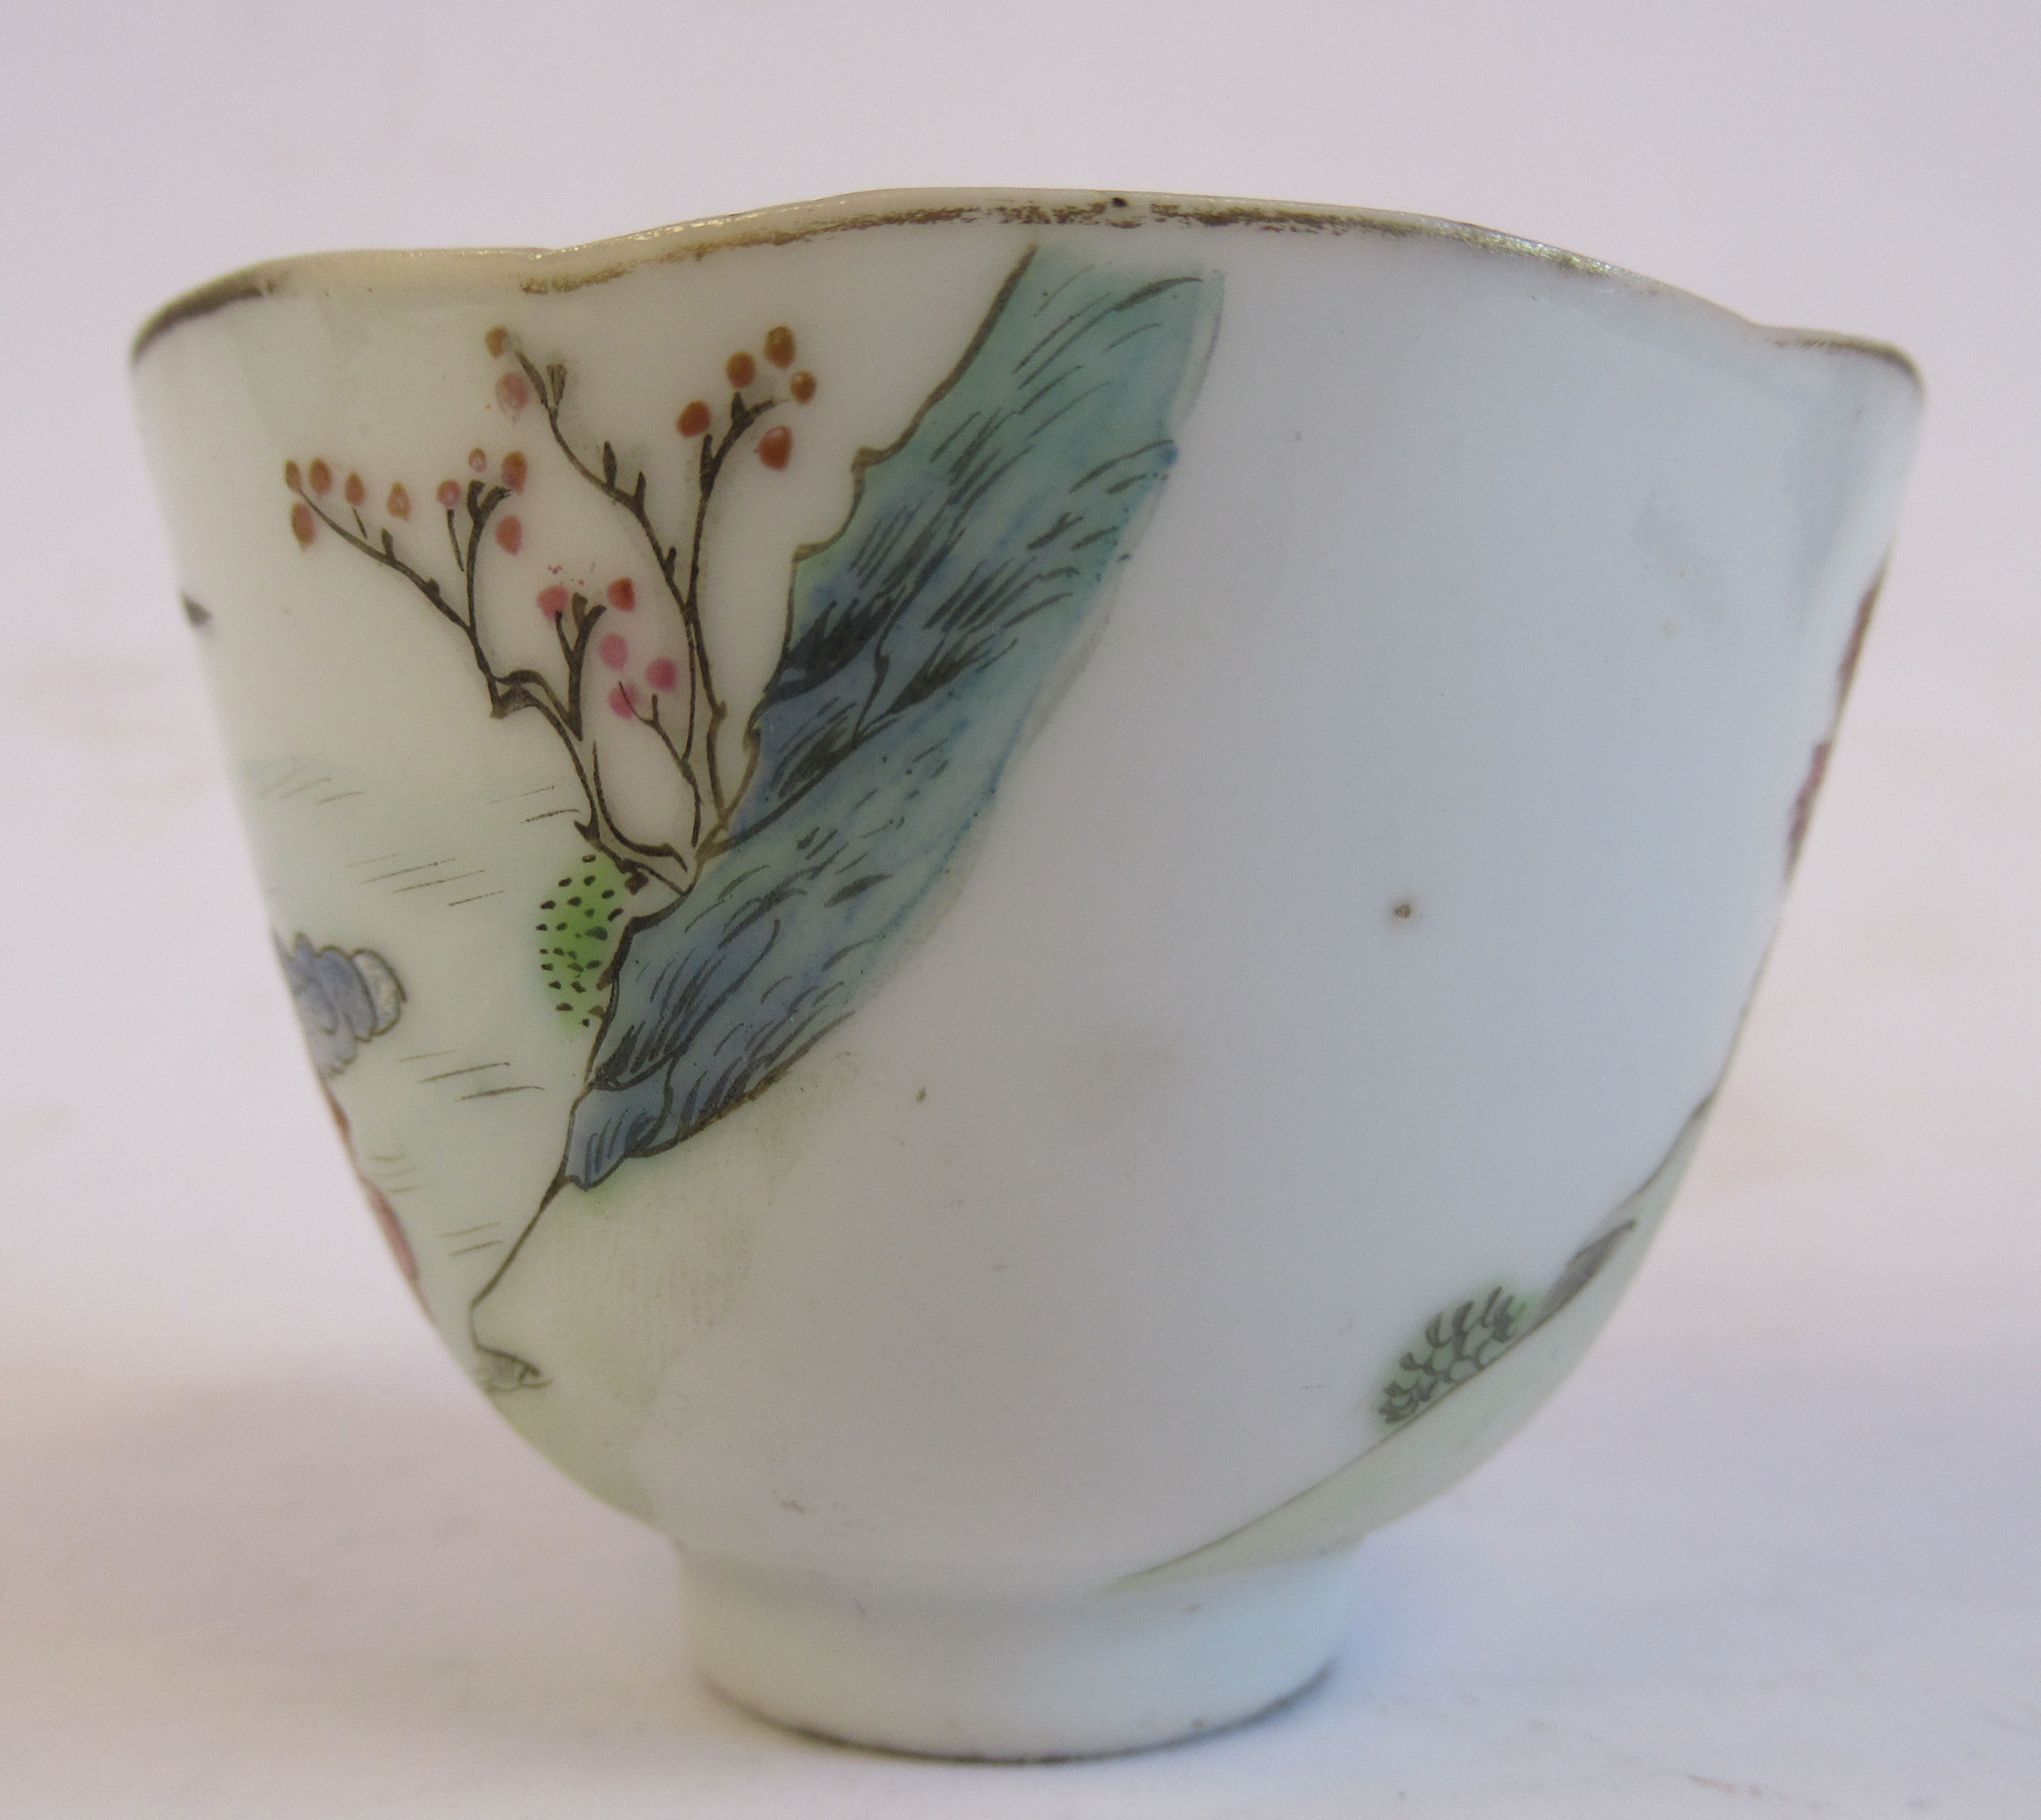 """A 19thC Chinese porcelain footed wine cup, decorated in famille rose with figures and birds 1.75""""h - Image 3 of 7"""